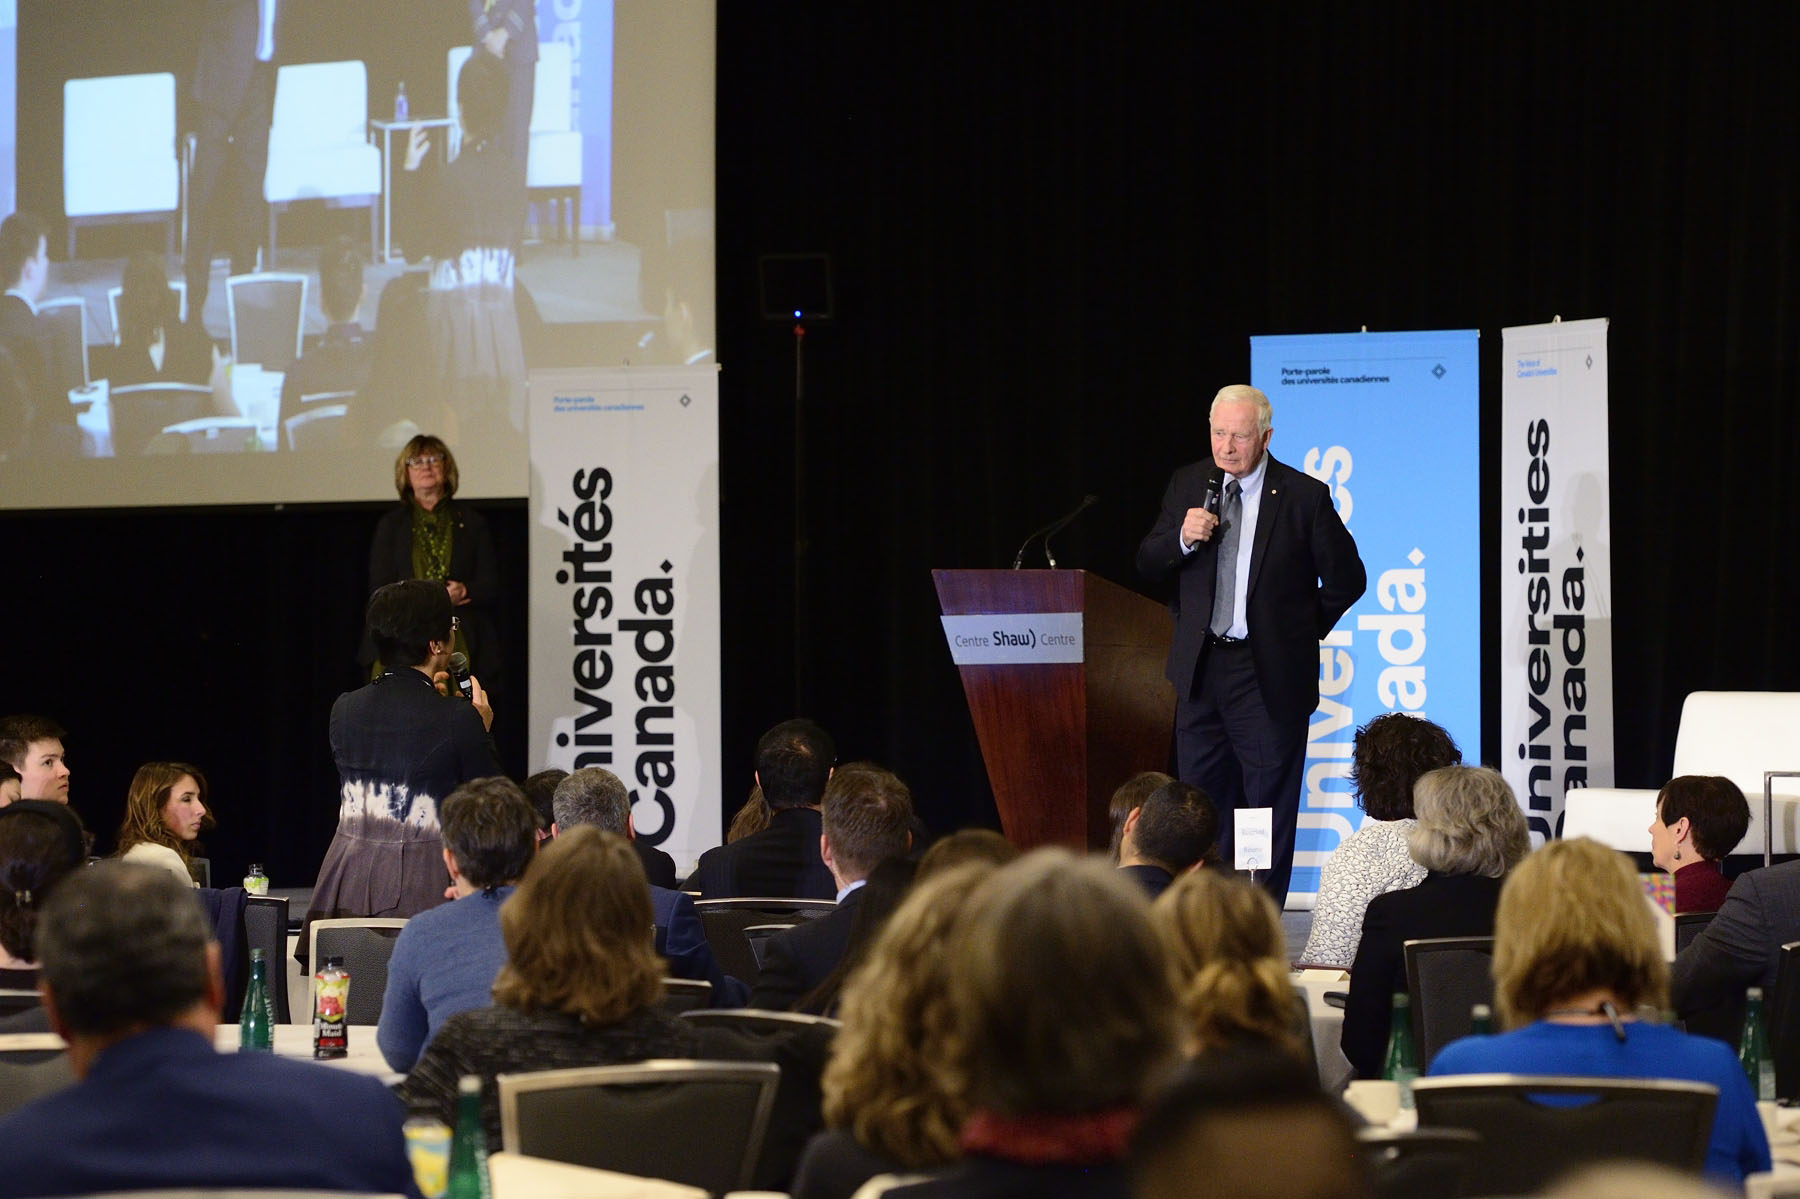 His Excellency the Right Honourable David Johnston, Governor General of Canada, delivered the closing address at Converge 2017 on February 7 at the Shaw Centre in Ottawa.